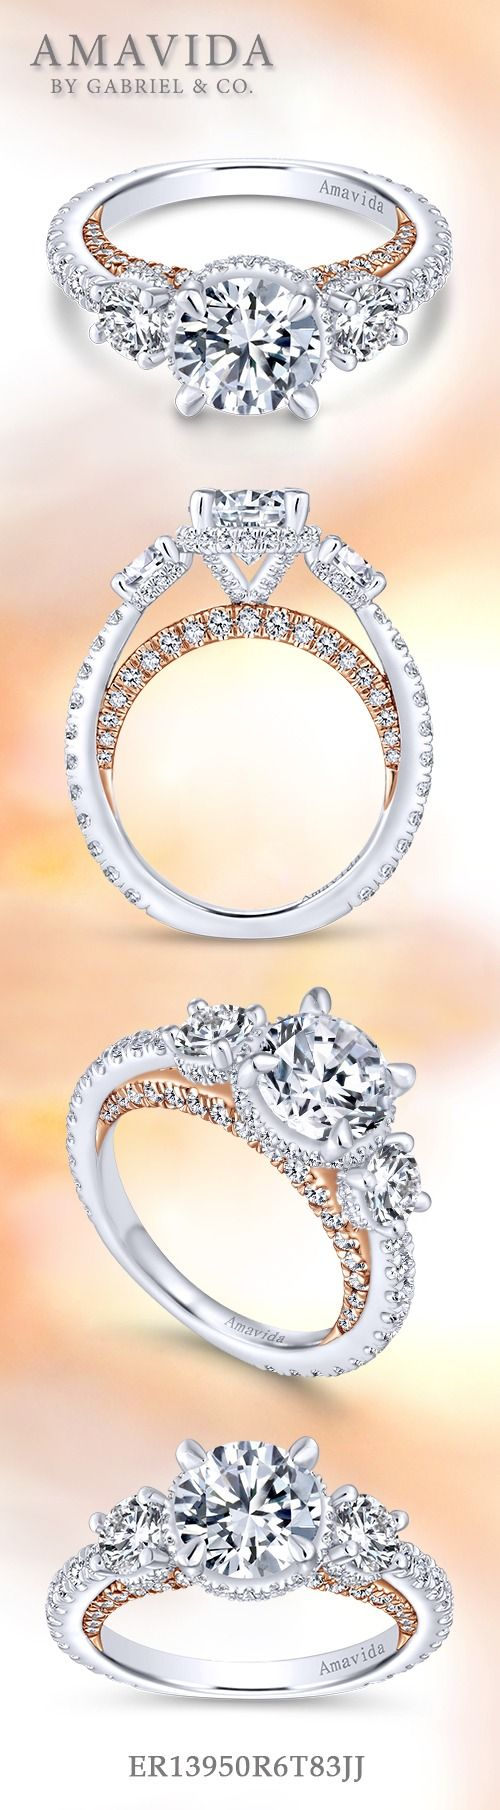 Gabriel & Co.-Voted #1 Most Preferred Fine Jewelry and Bridal Brand. 18k White/Rose Gold Round 3 Stones Halo  Engagement Ring